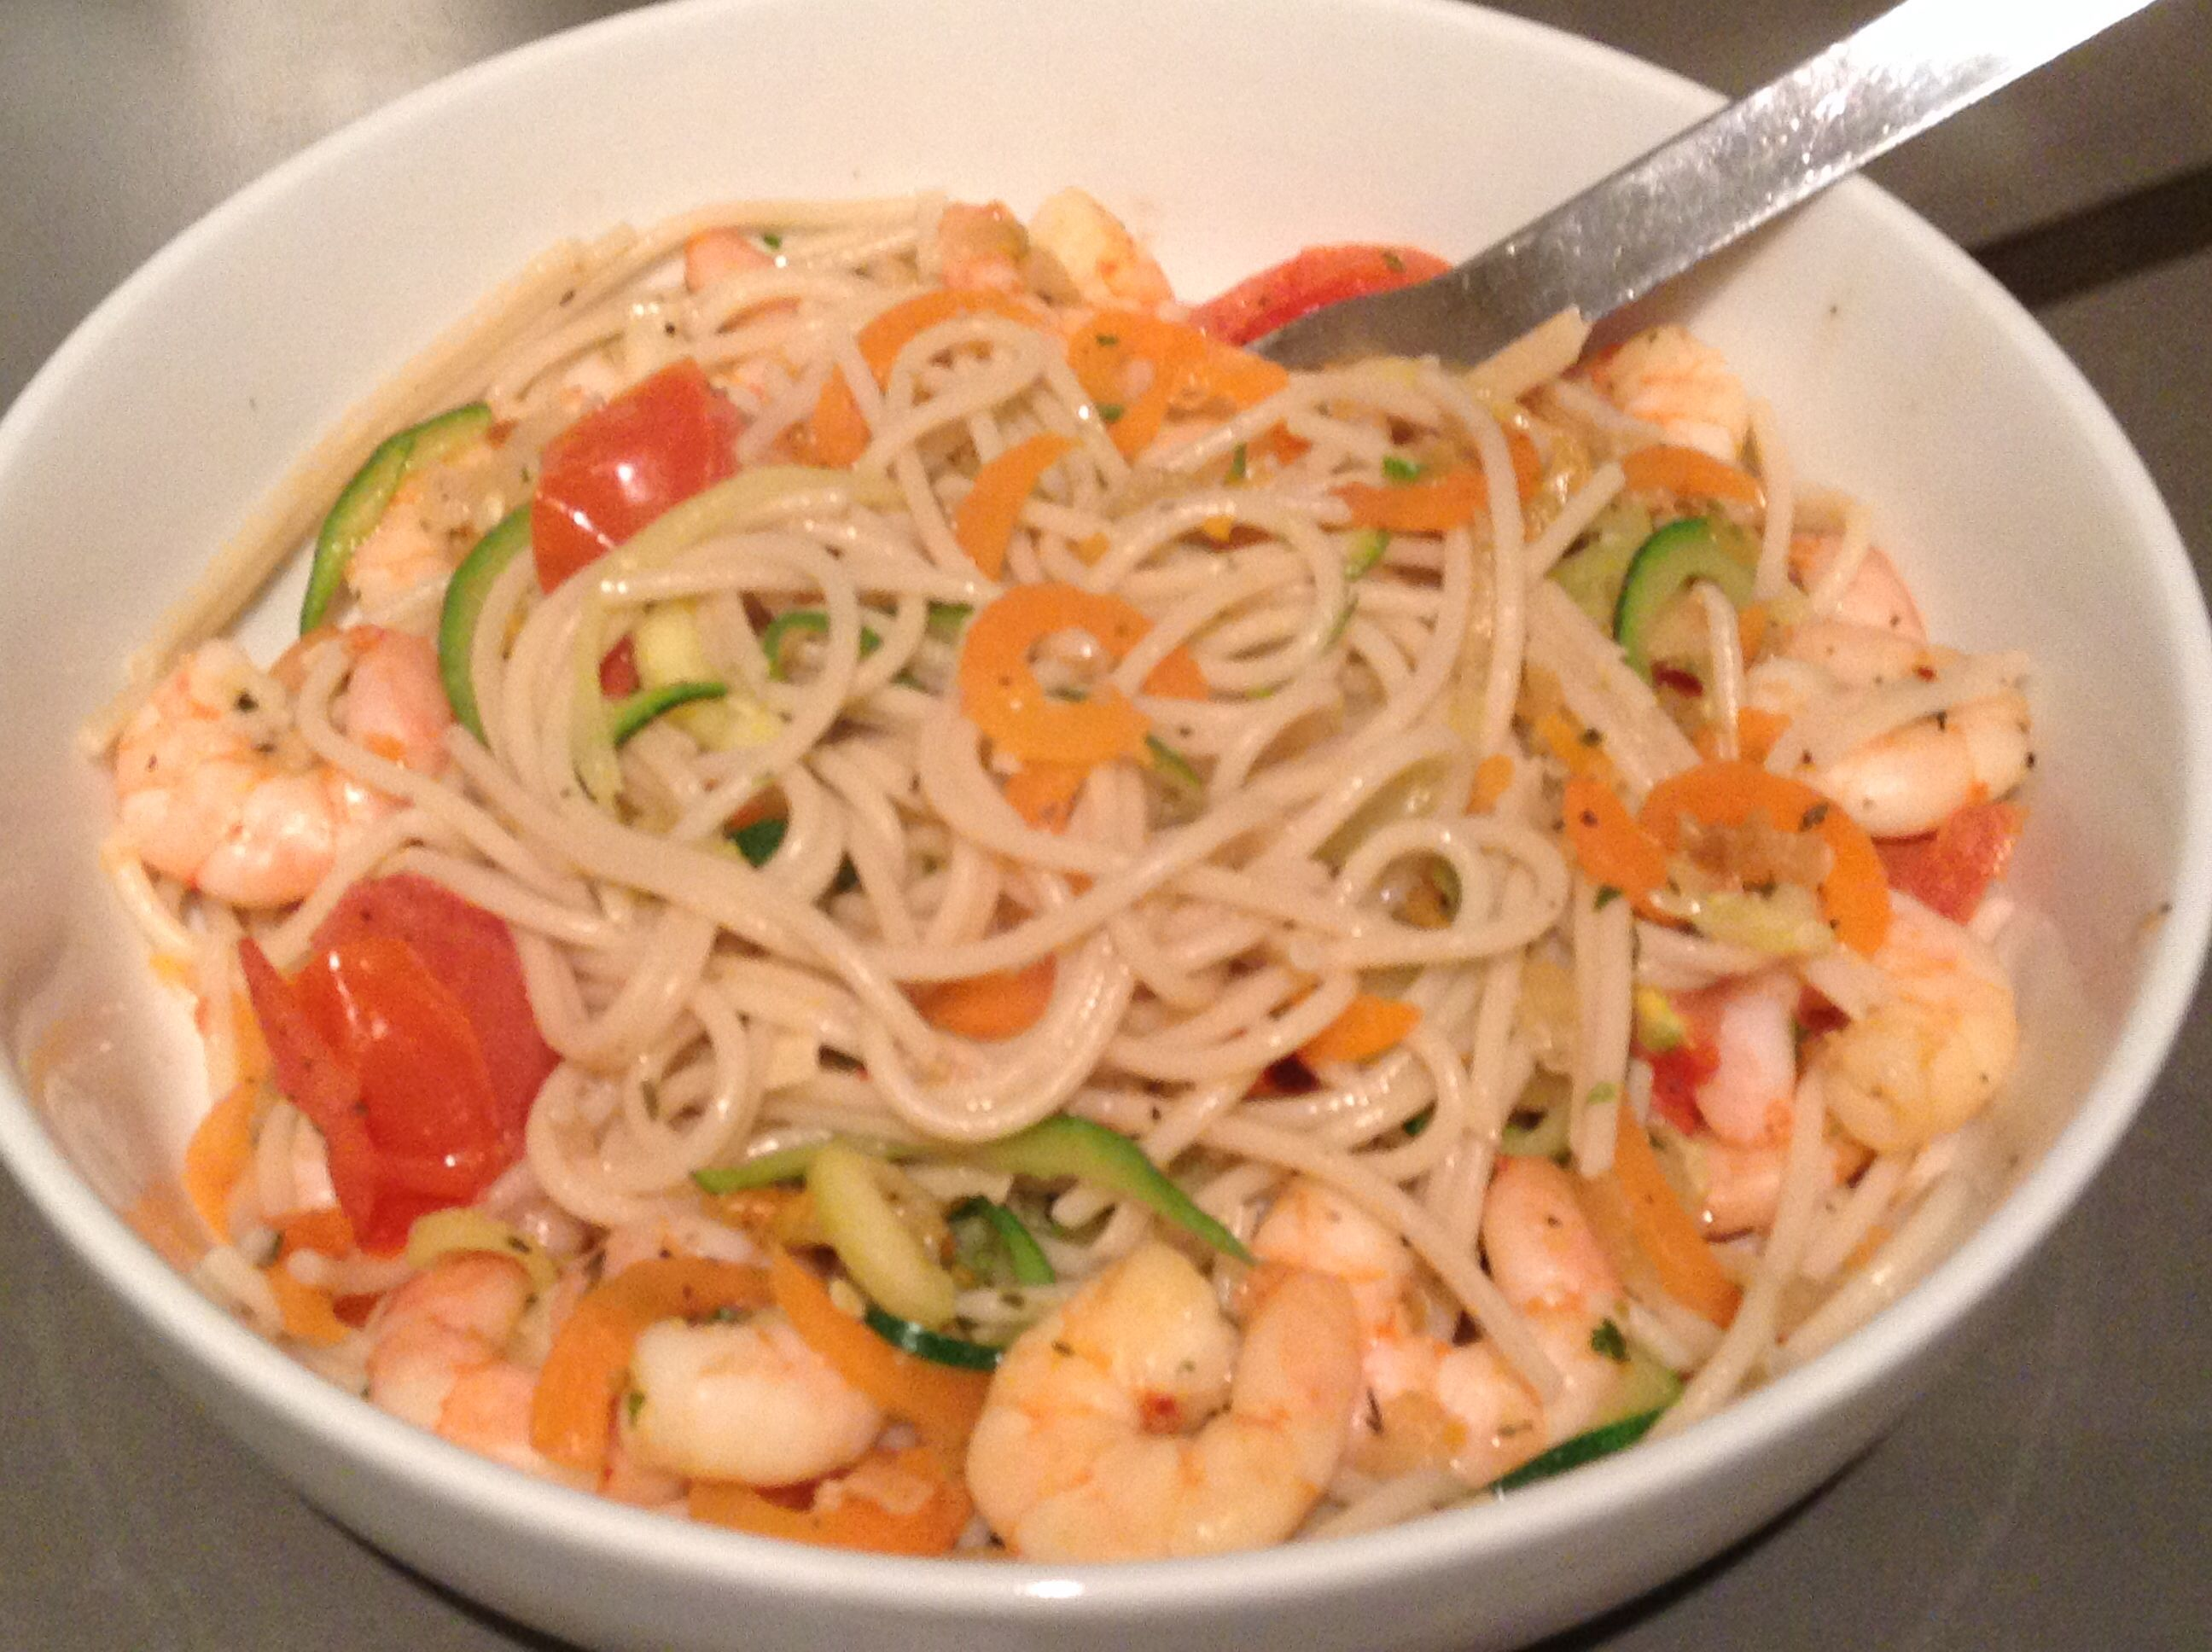 Quick, easy, healthy...no need to eat badly: spiralised courgettes, carrots, chopped onion, tomatoes, prawns, garlic, chilli & Doves Farm brown rice pasta. Soooo good. #glutenfree #sugarfree #dairyfree #yeastfree